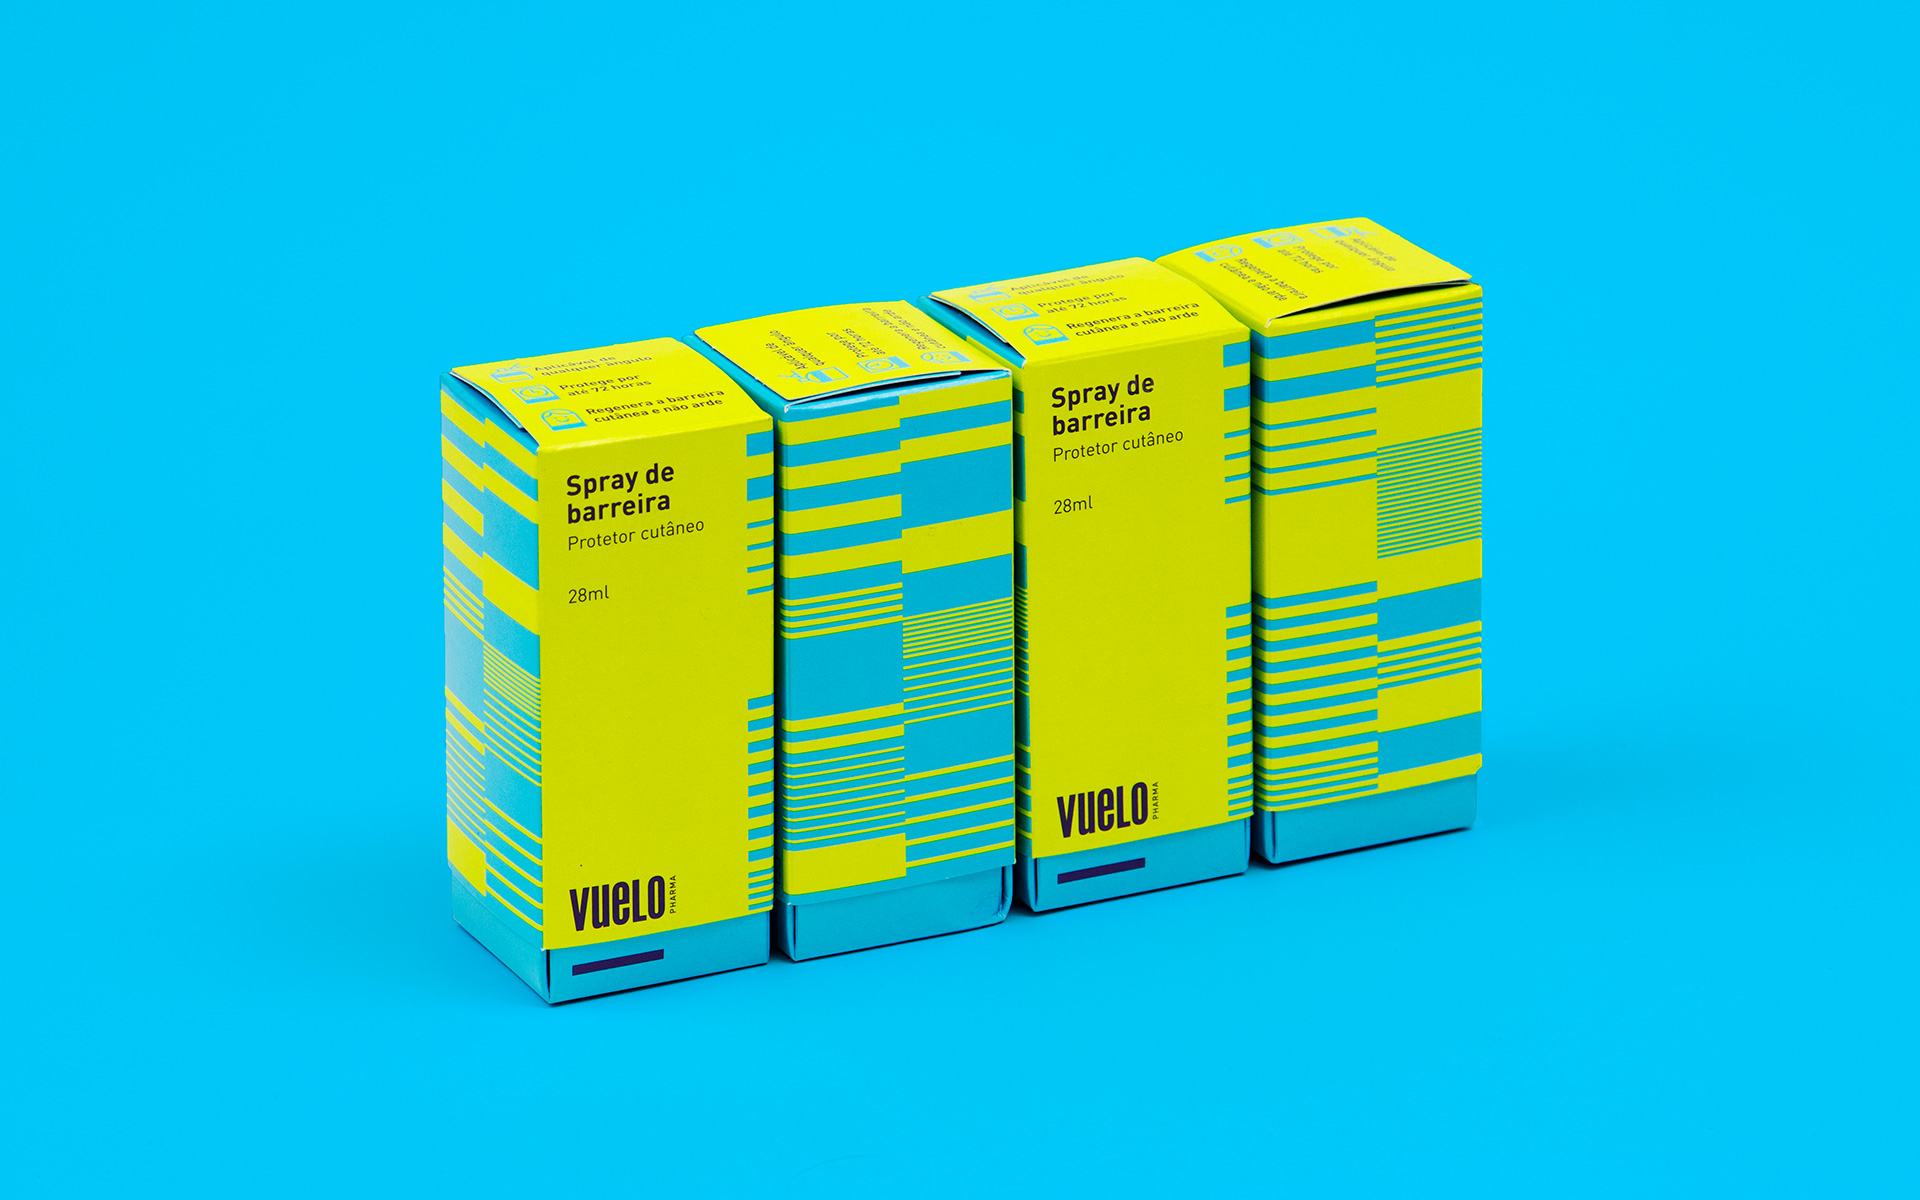 branding-design-packaging-vuelo1-1